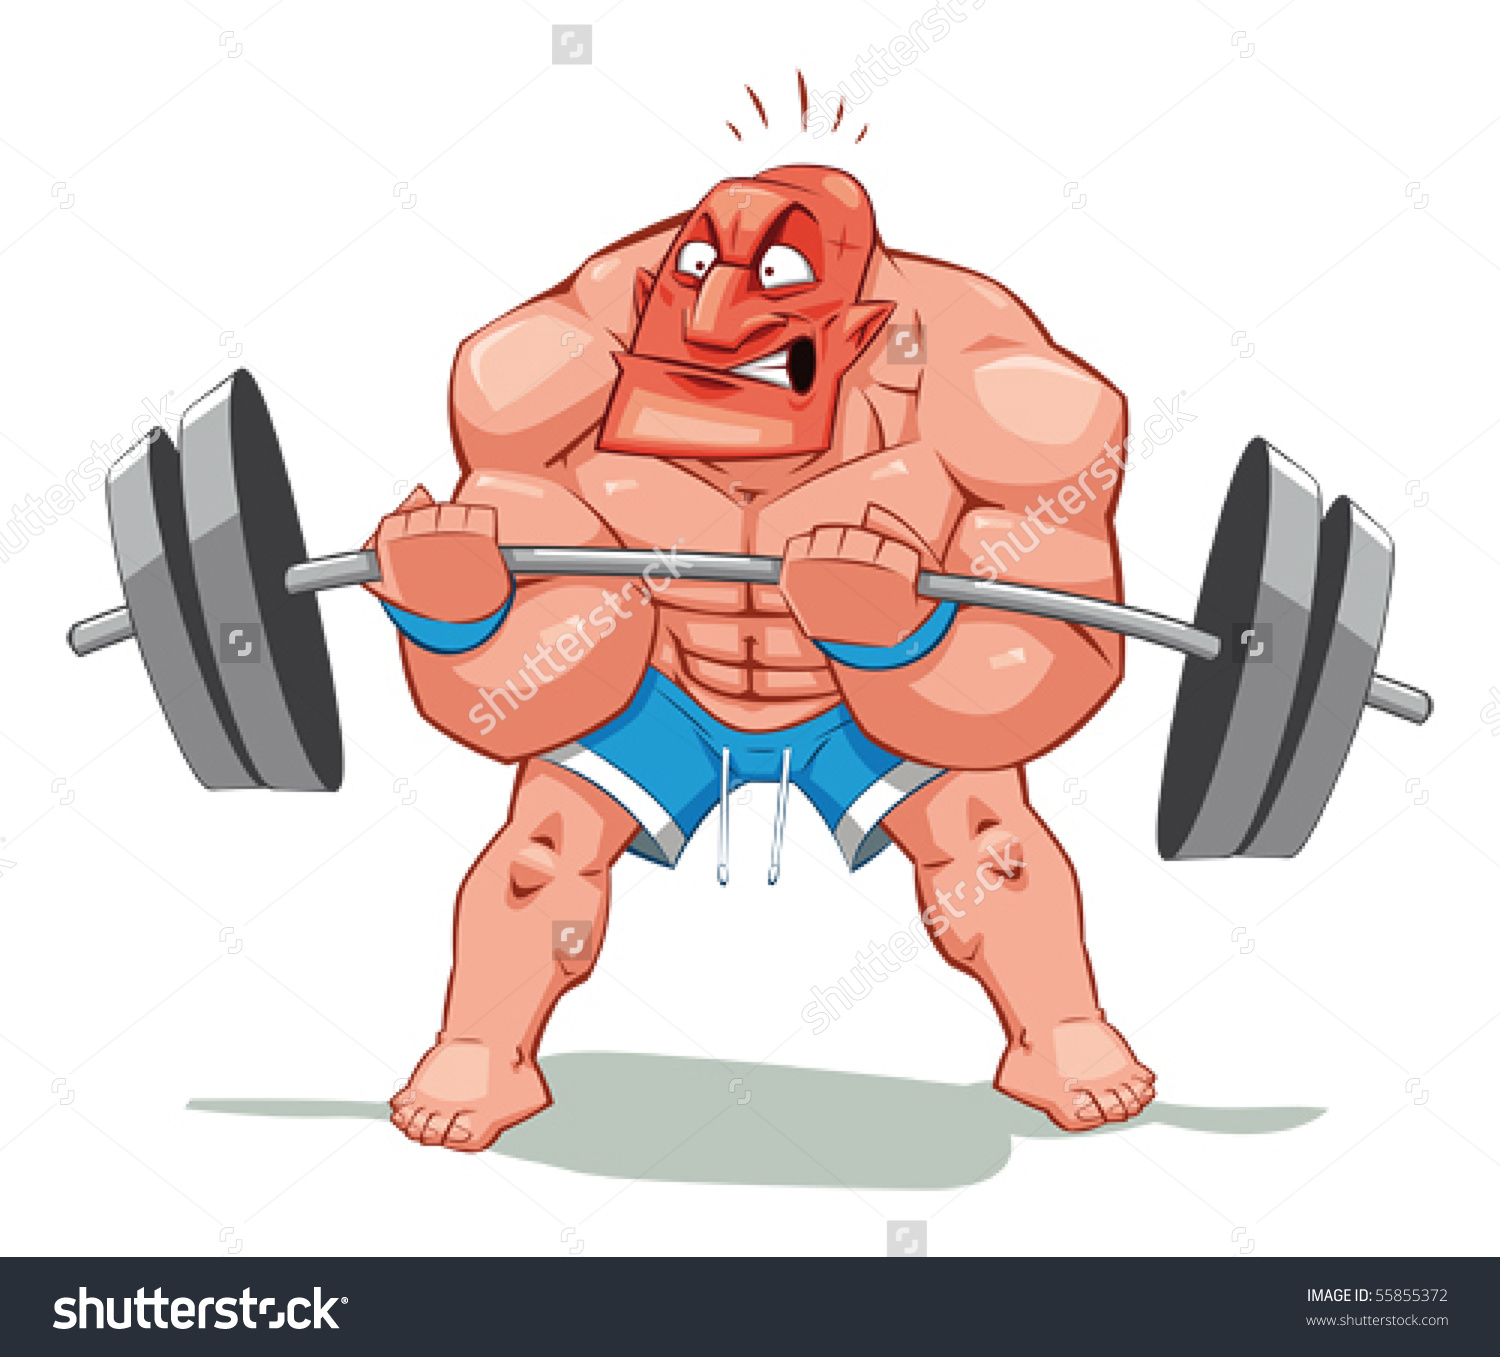 1500x1357 Stock Vector Muscle Man Funny Cartoon And Vector Character Object